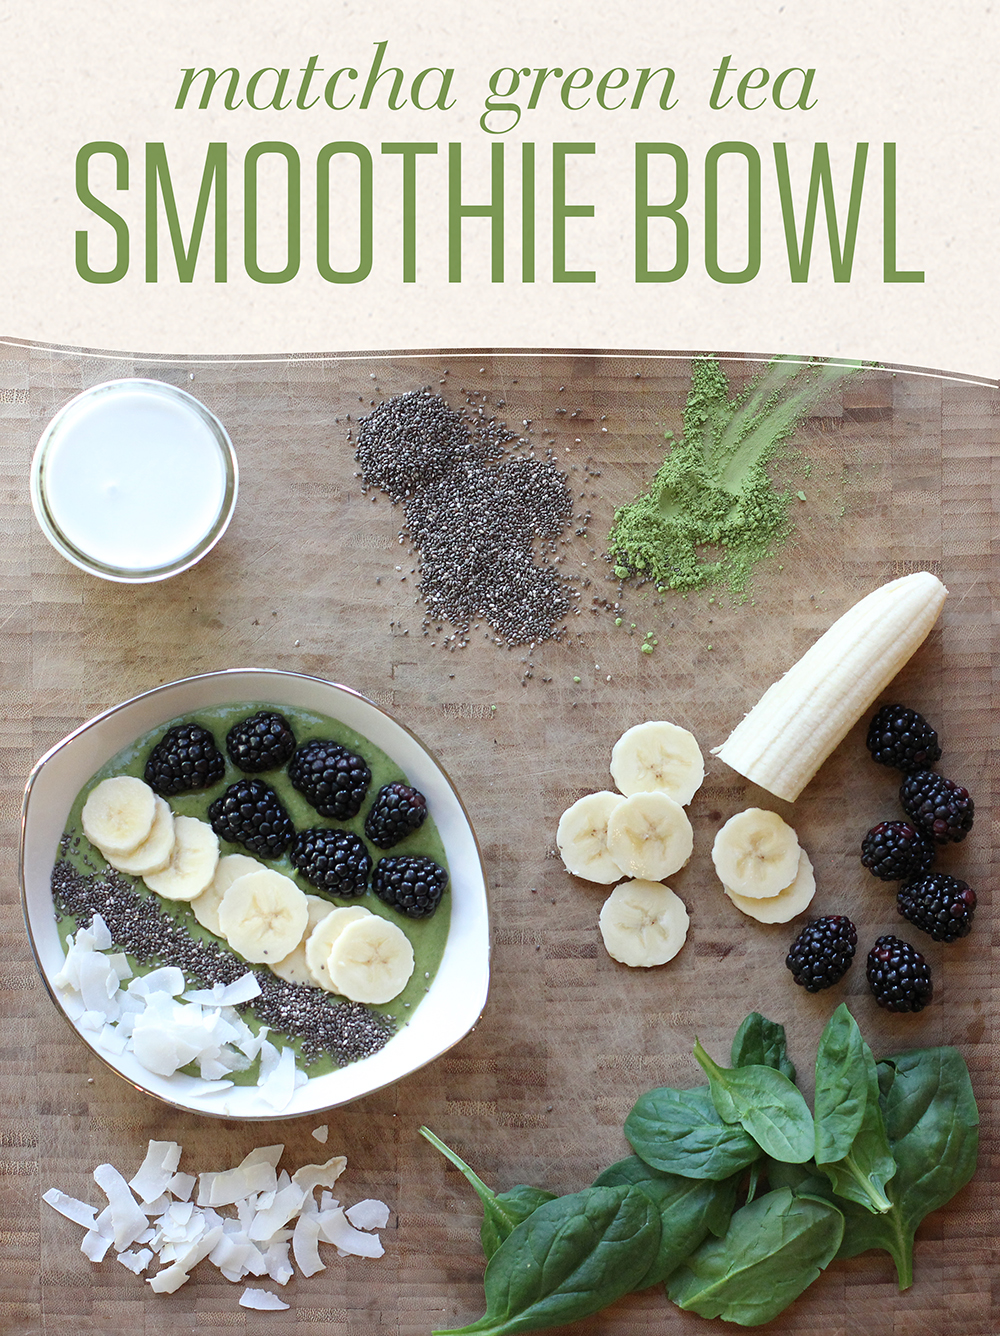 Supercharge your mornings with a matcha smoothie bowl!